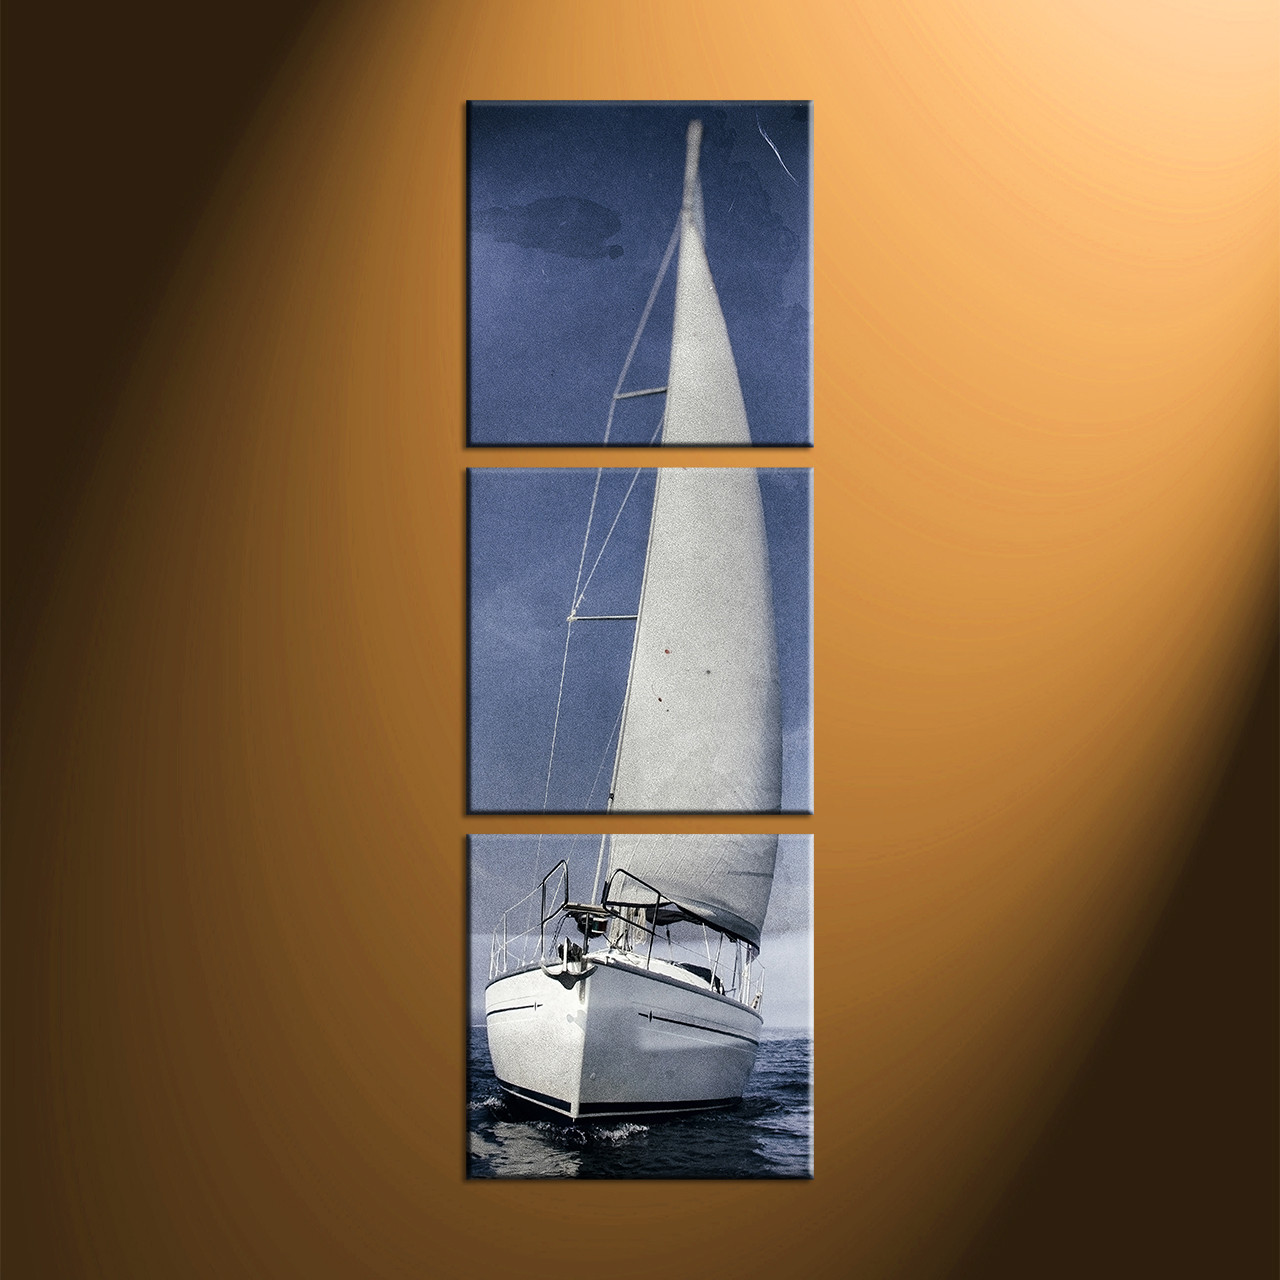 Large Vertical Paintings 3 Piece Grey Sky Ocean Ship Canvas Art Prints